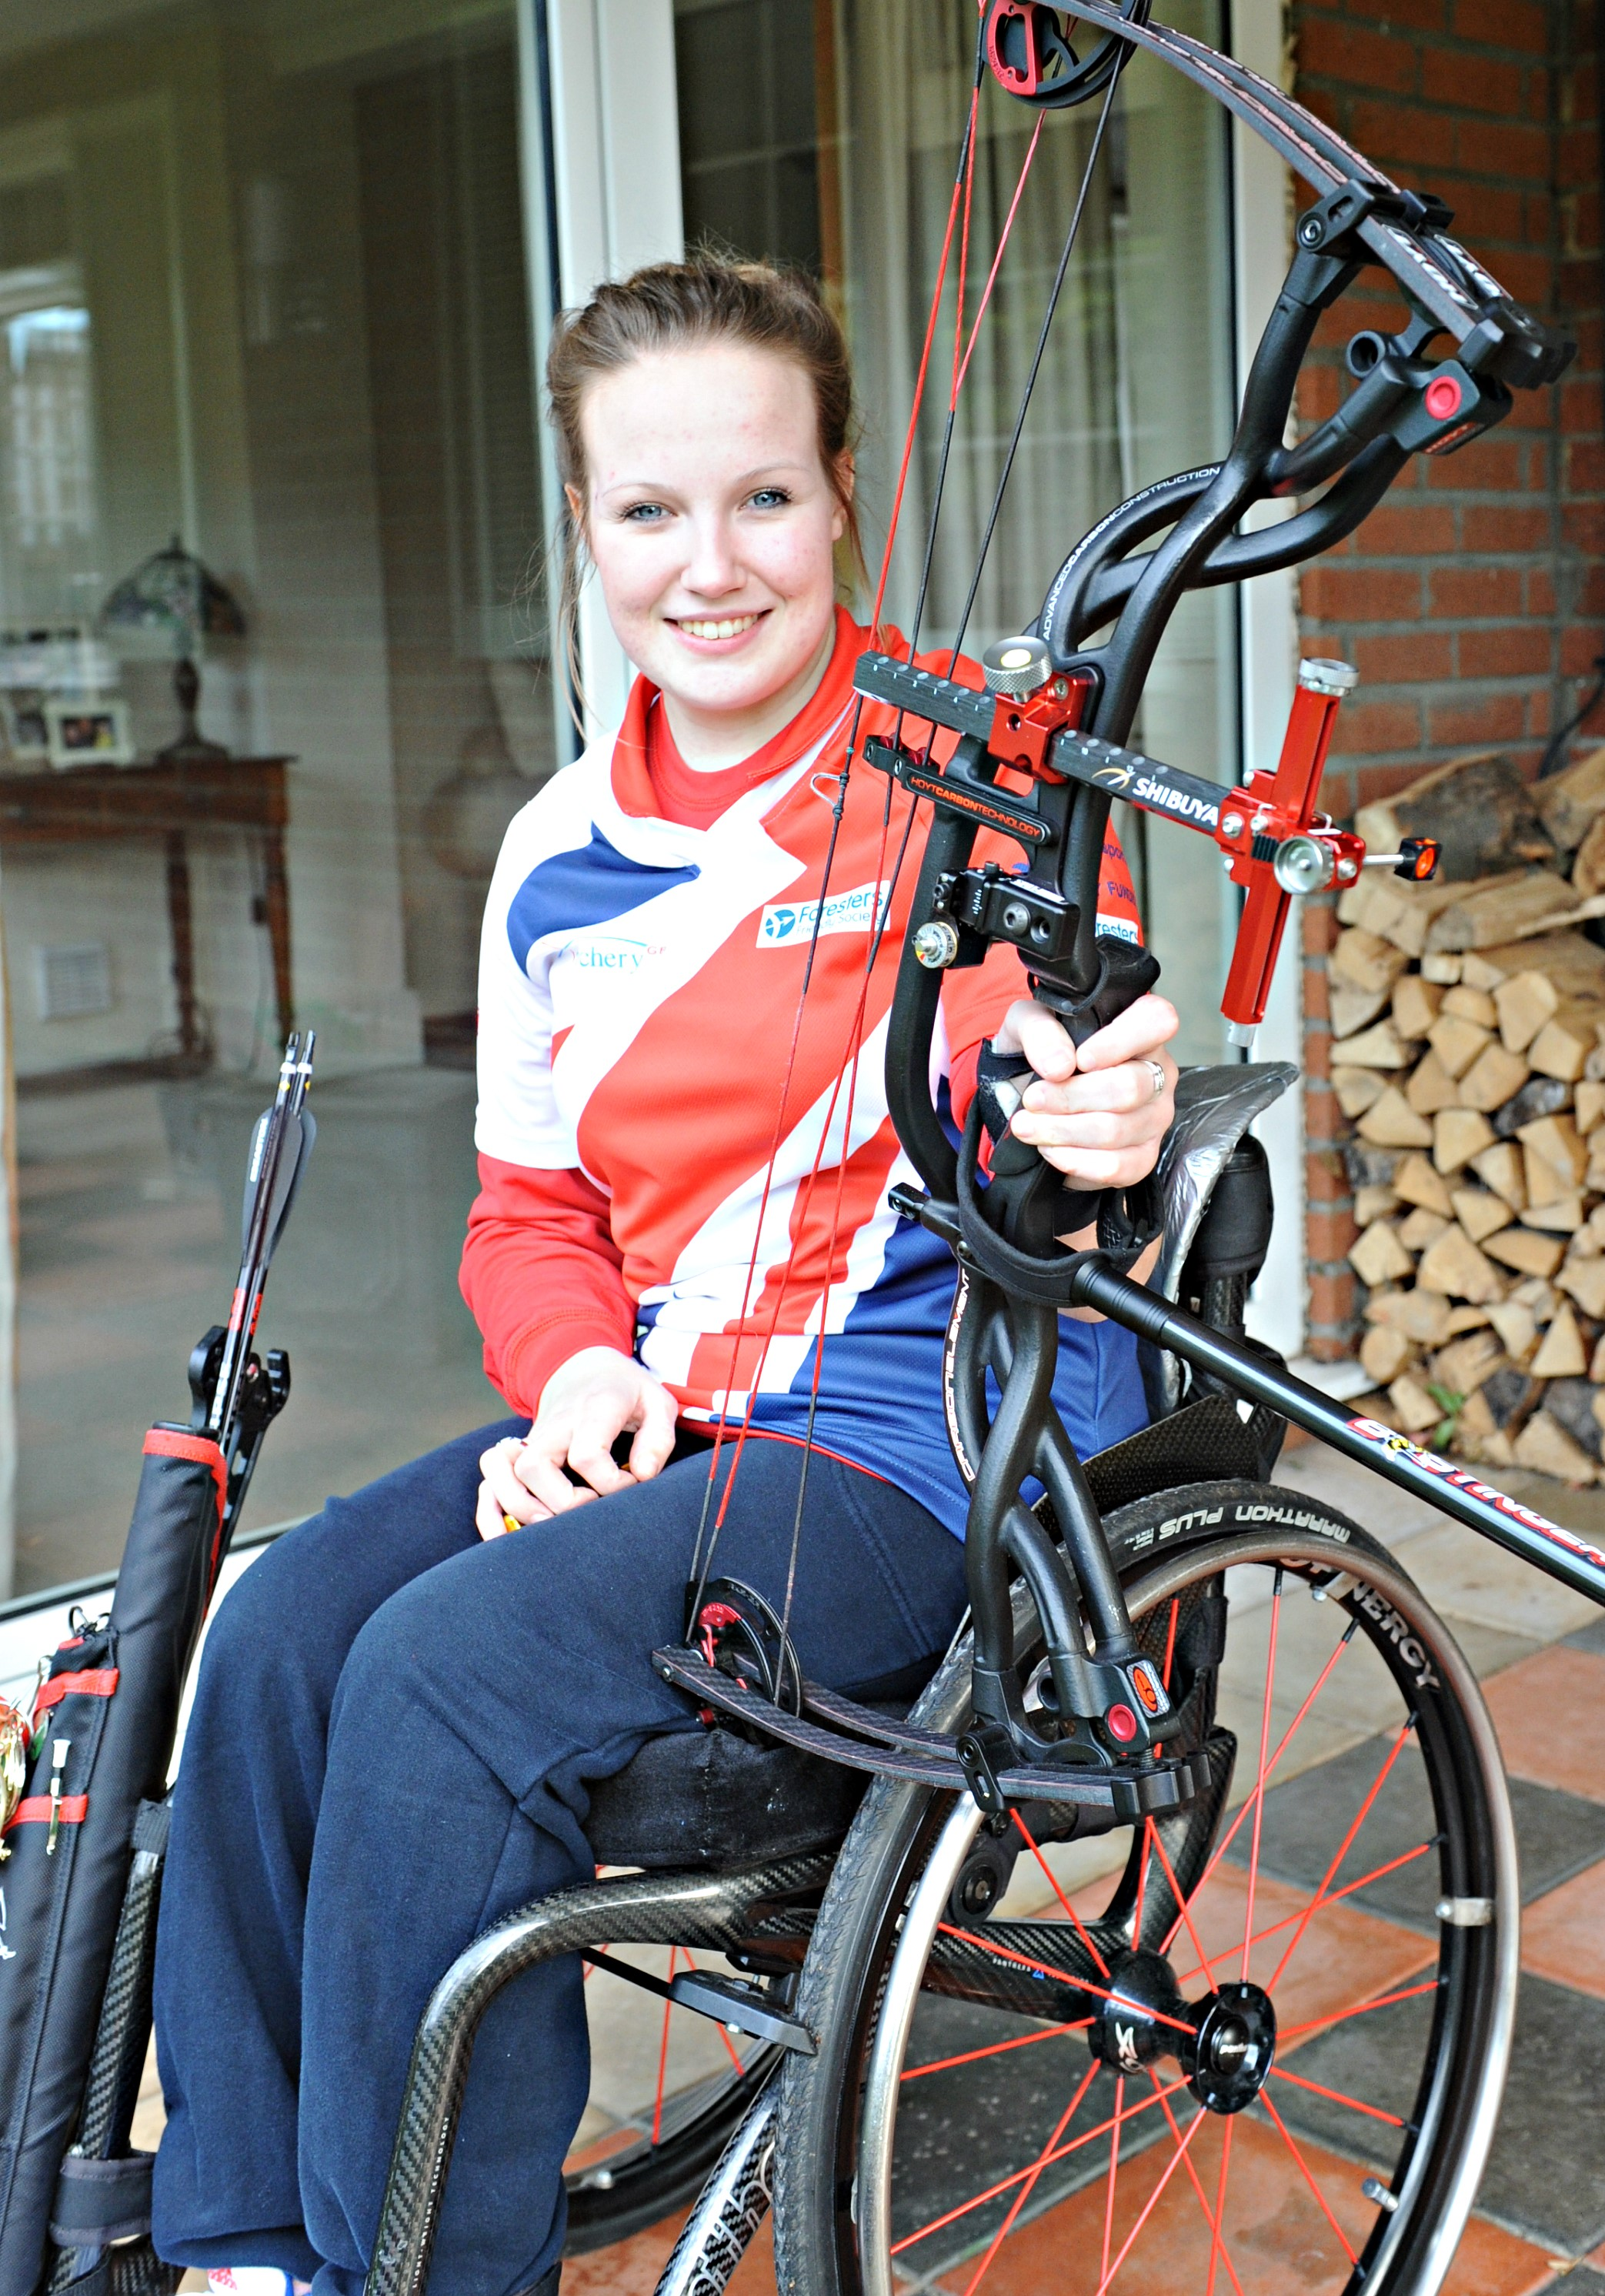 Archery: Kingswood teenager Chloe Ball sets sights on Rio 2016